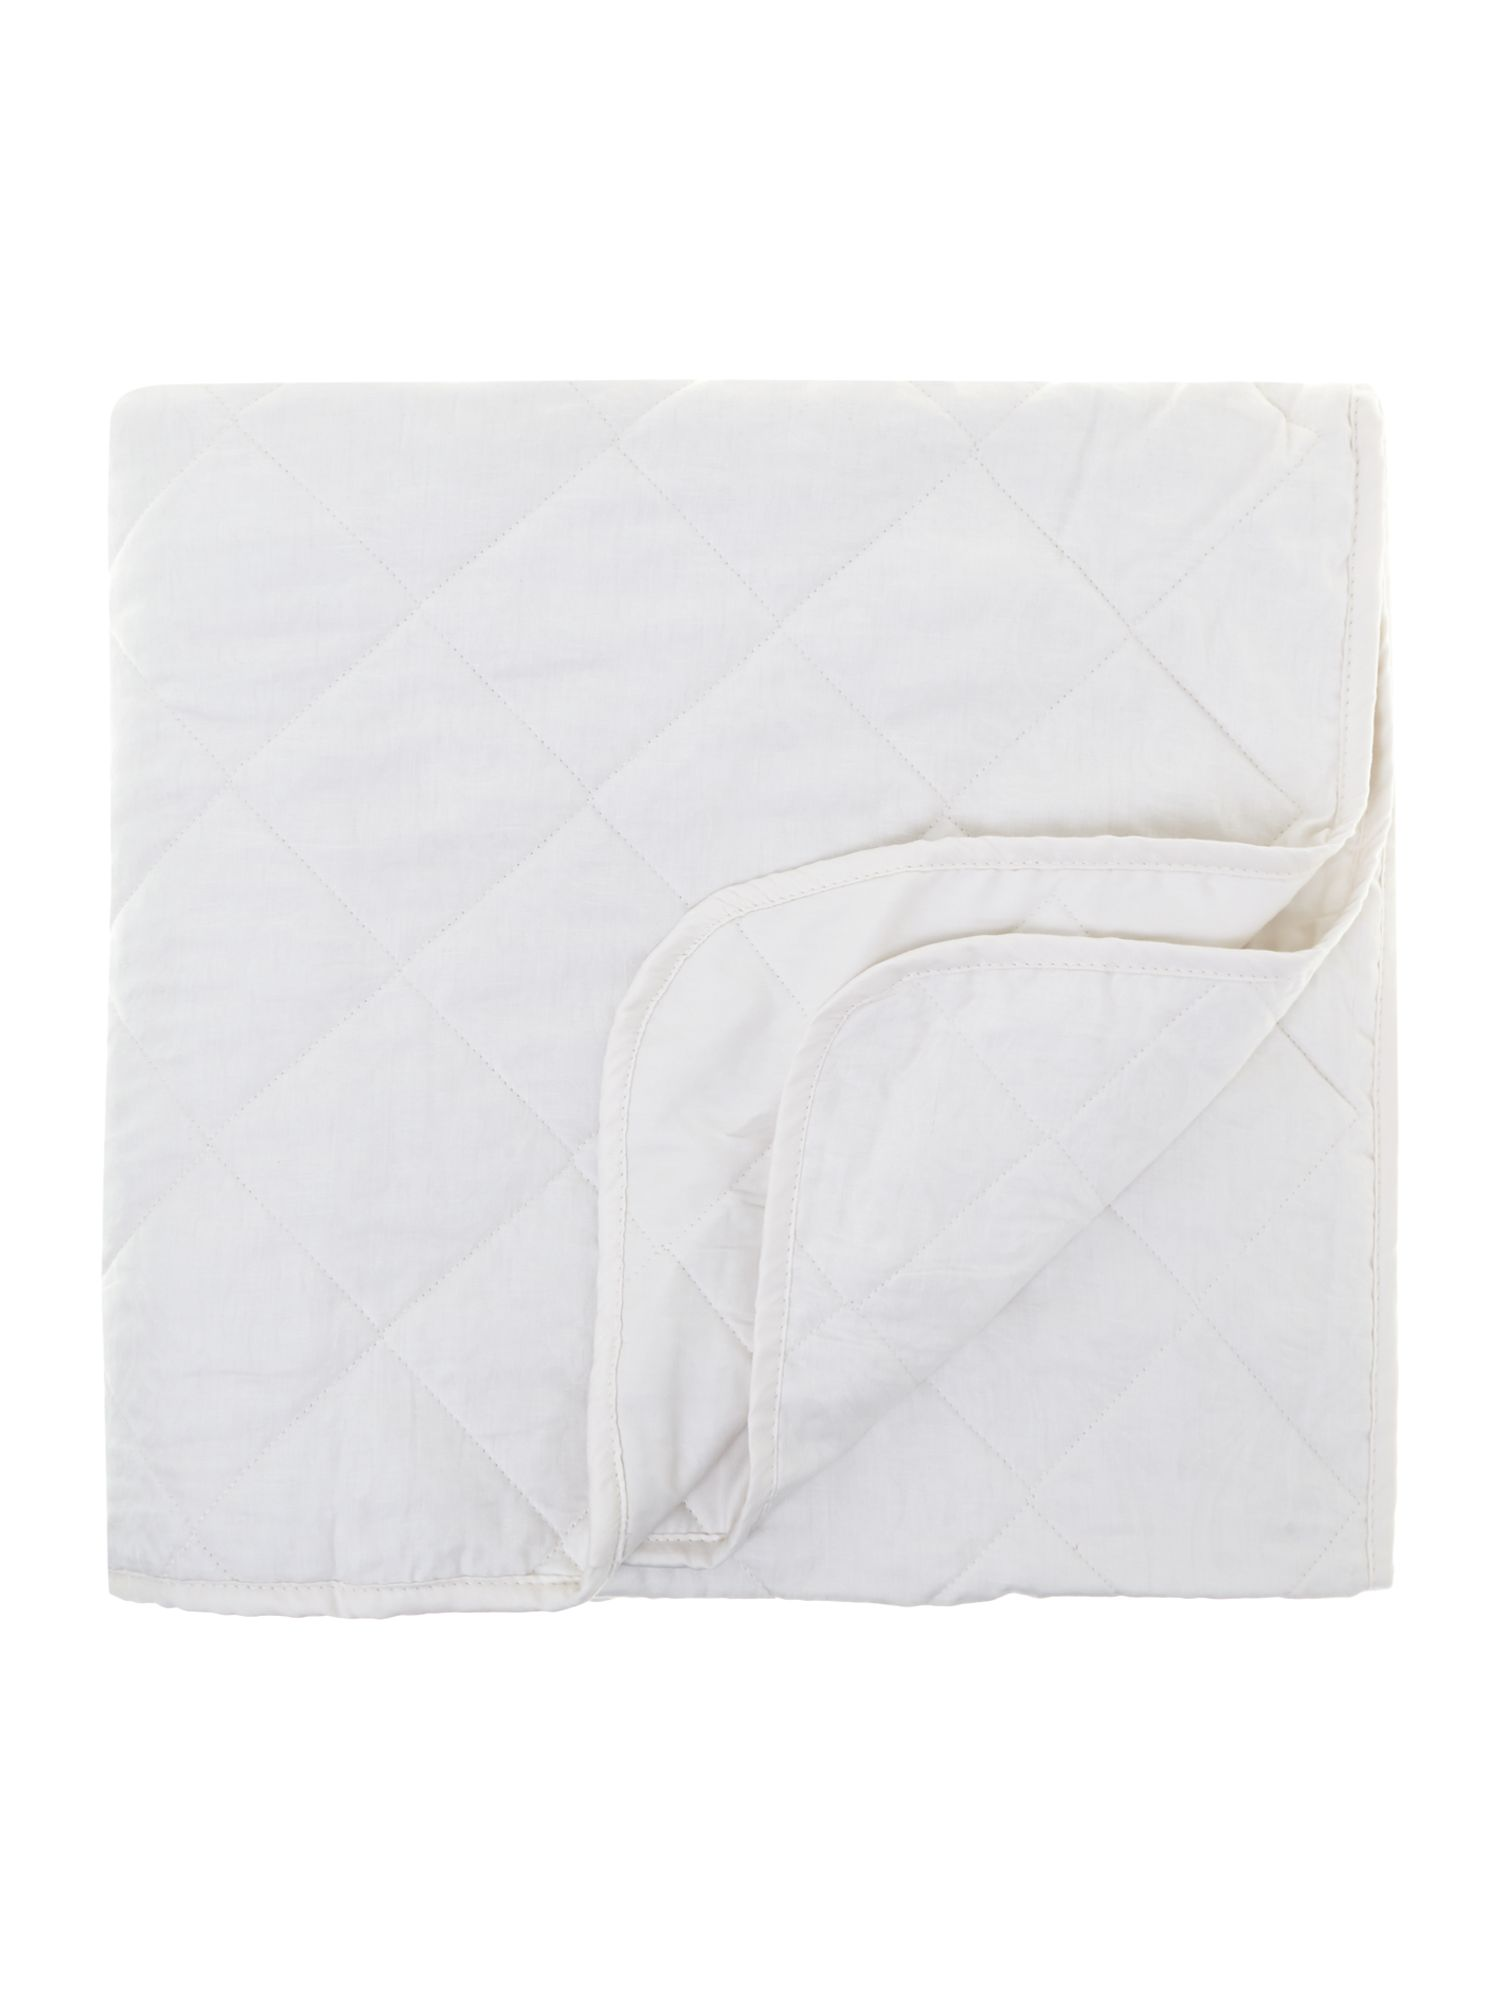 Lhc damask quilted bedspread cream